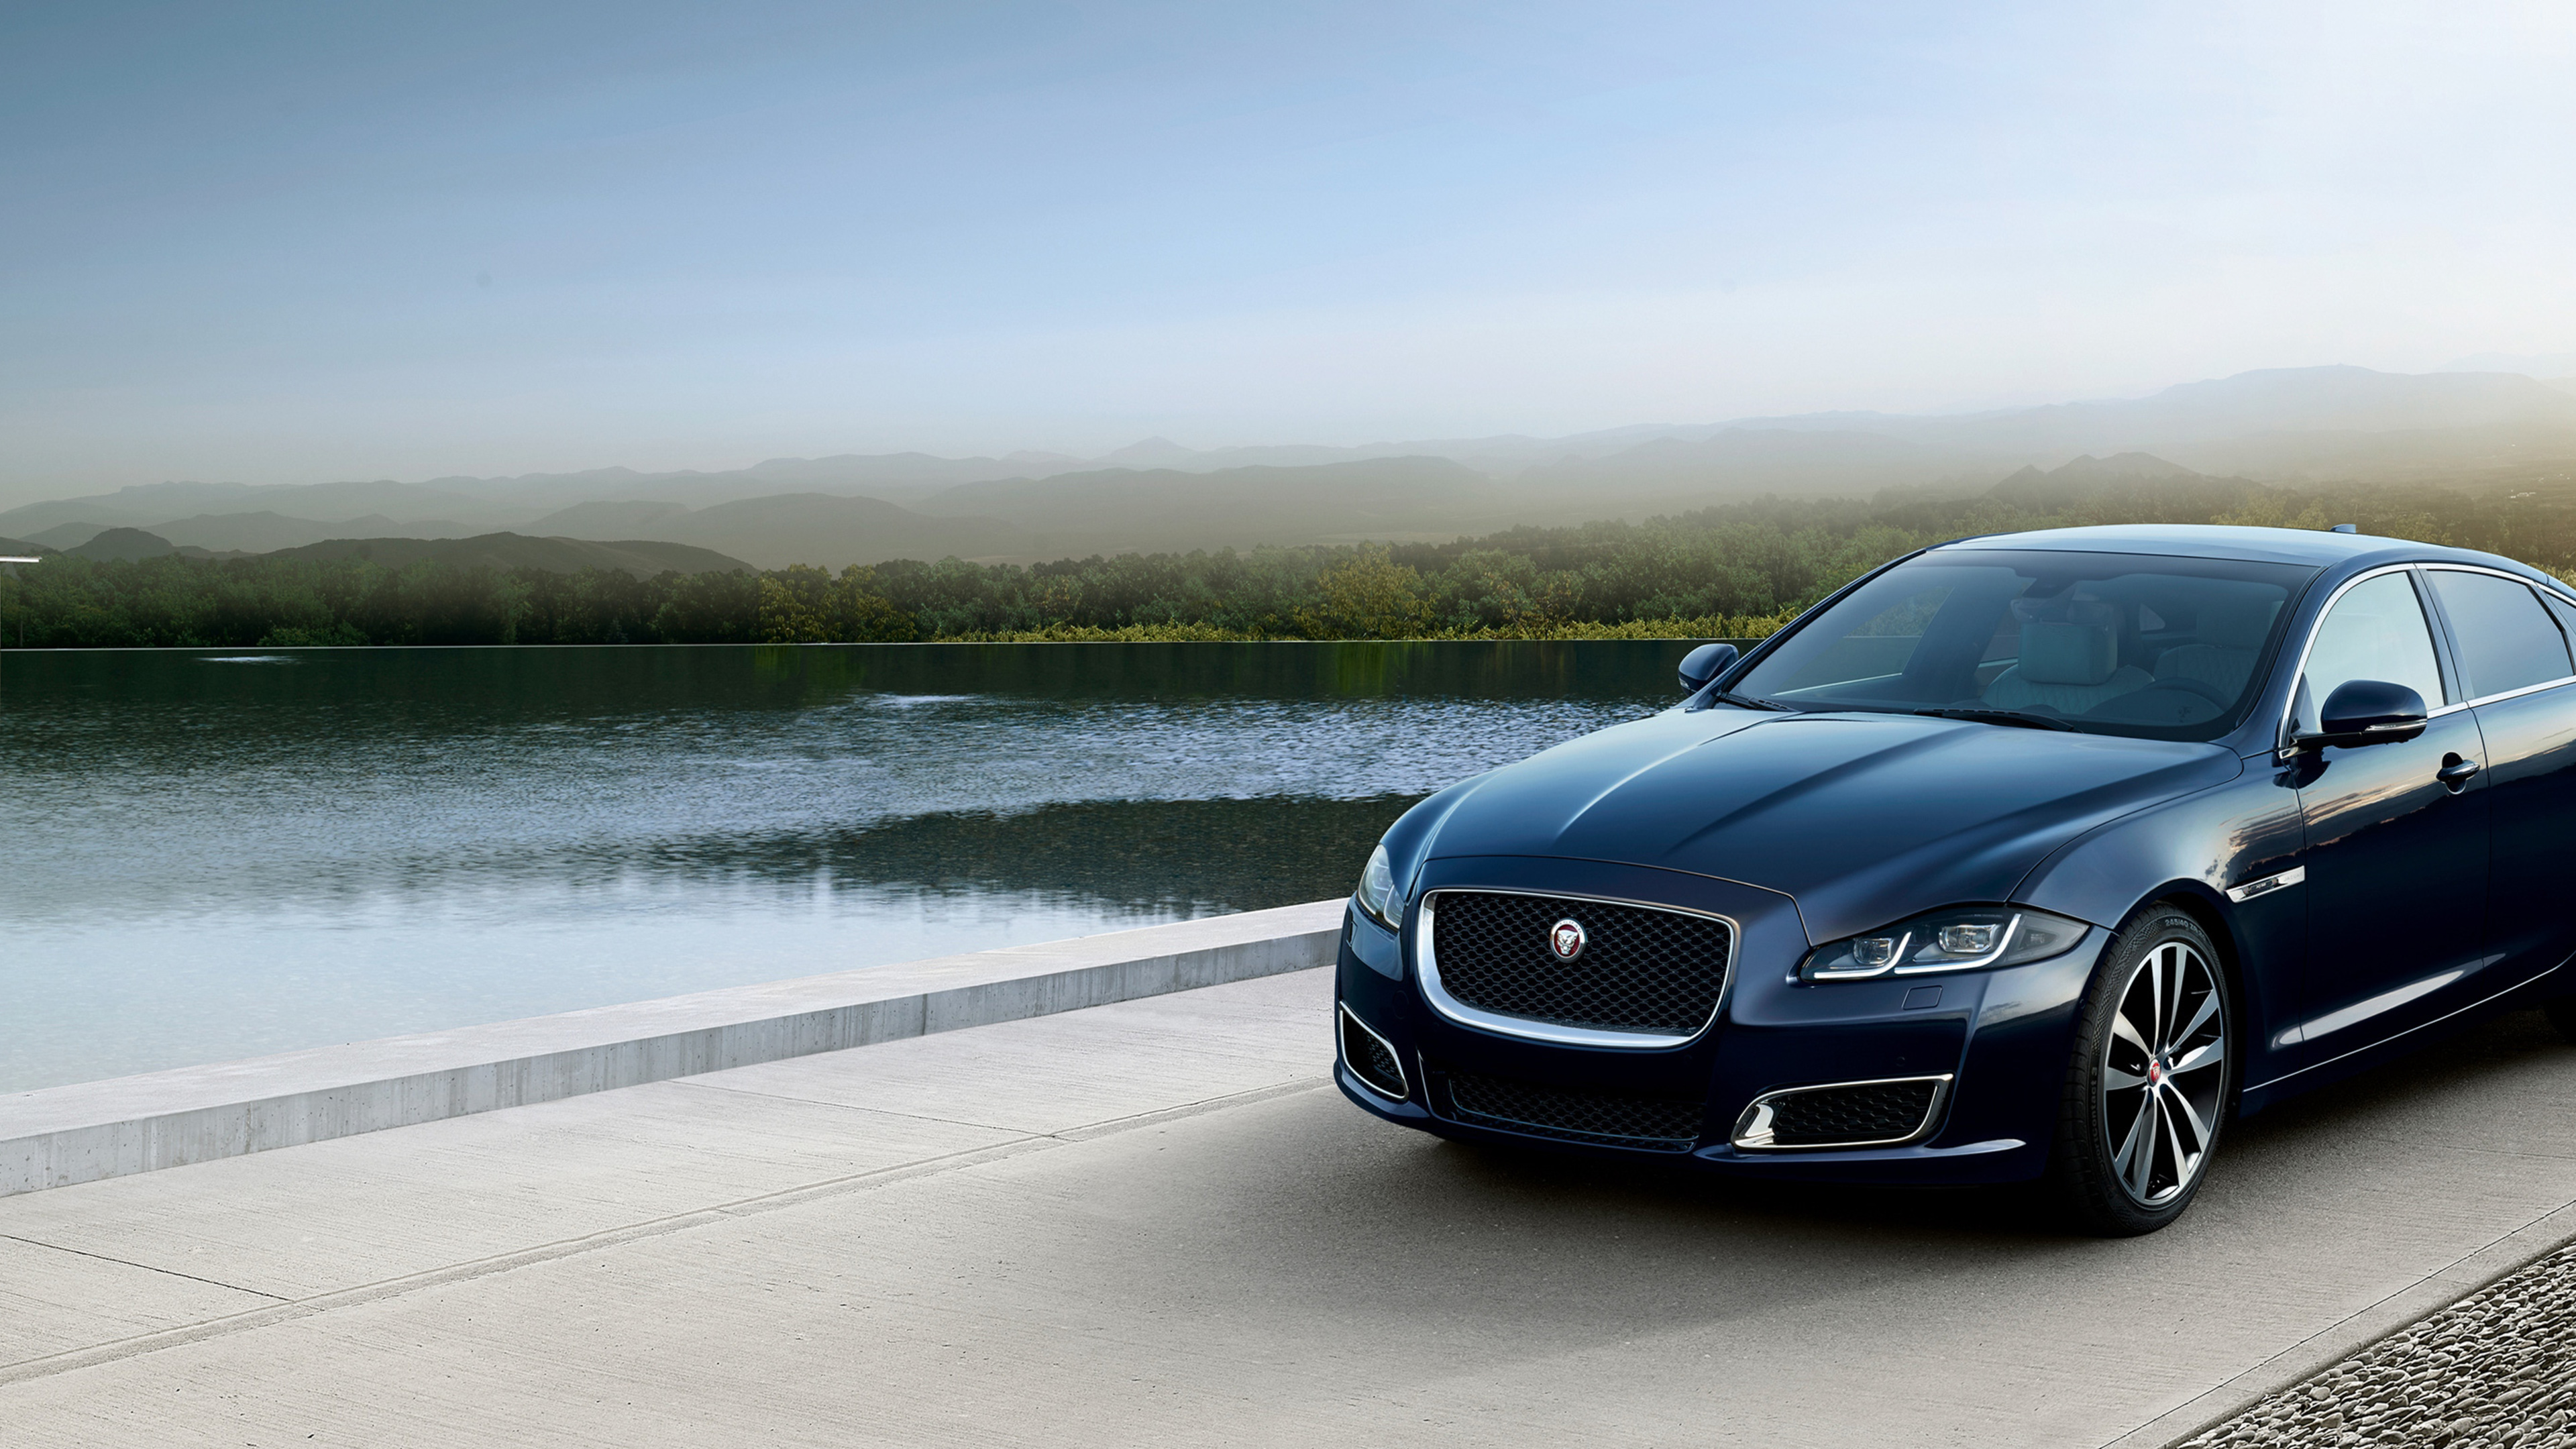 Wallpaper 4k Jaguar Xj50 Lwb 2018 Front 2018 Cars Wallpapers 4k